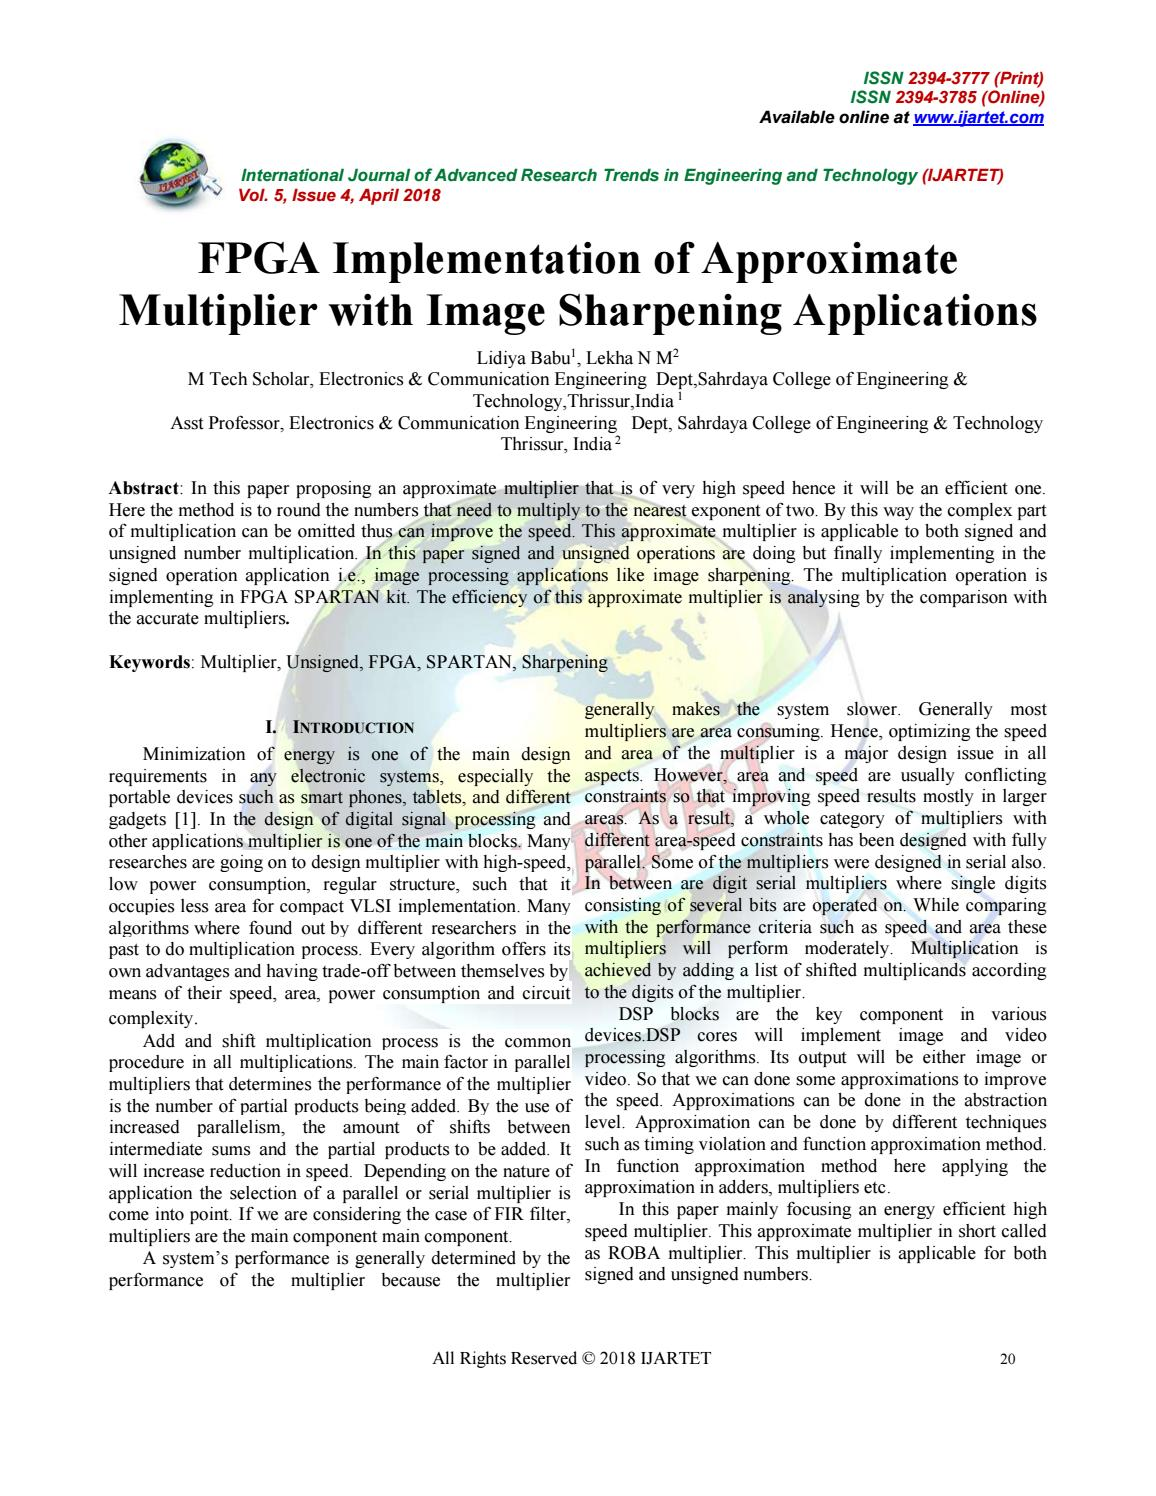 Fpga implementation of approximate multiplier with image